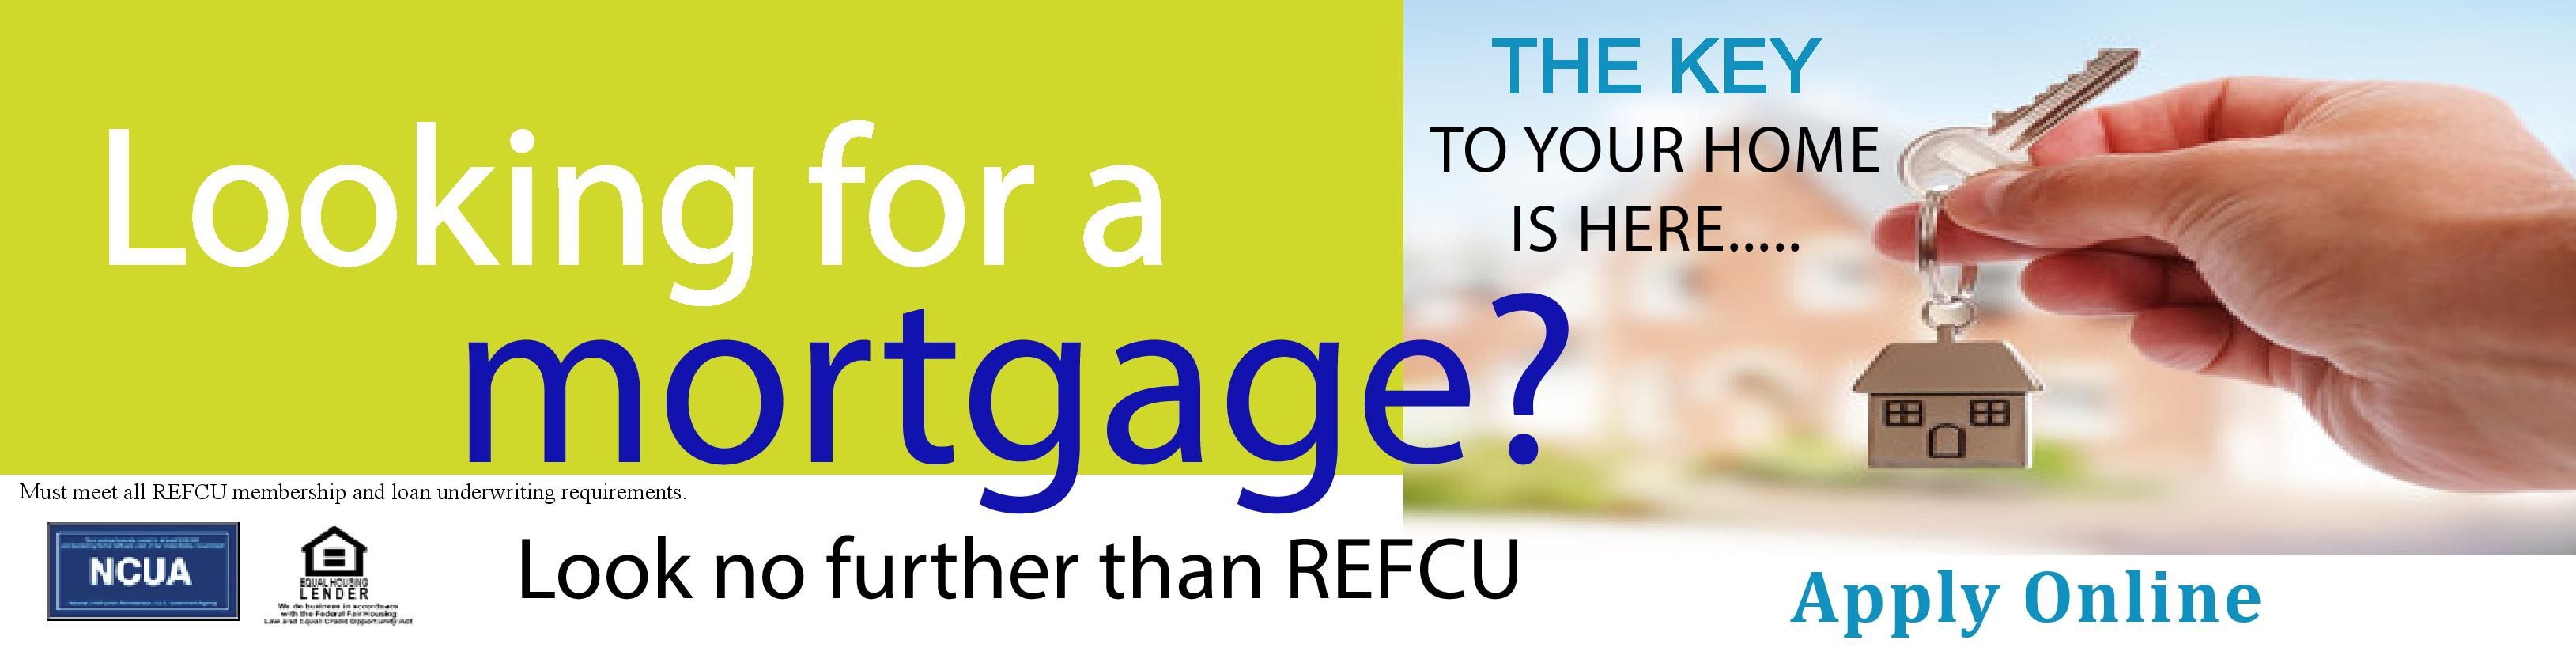 Looking for a mortgage? Look no further than REFCU